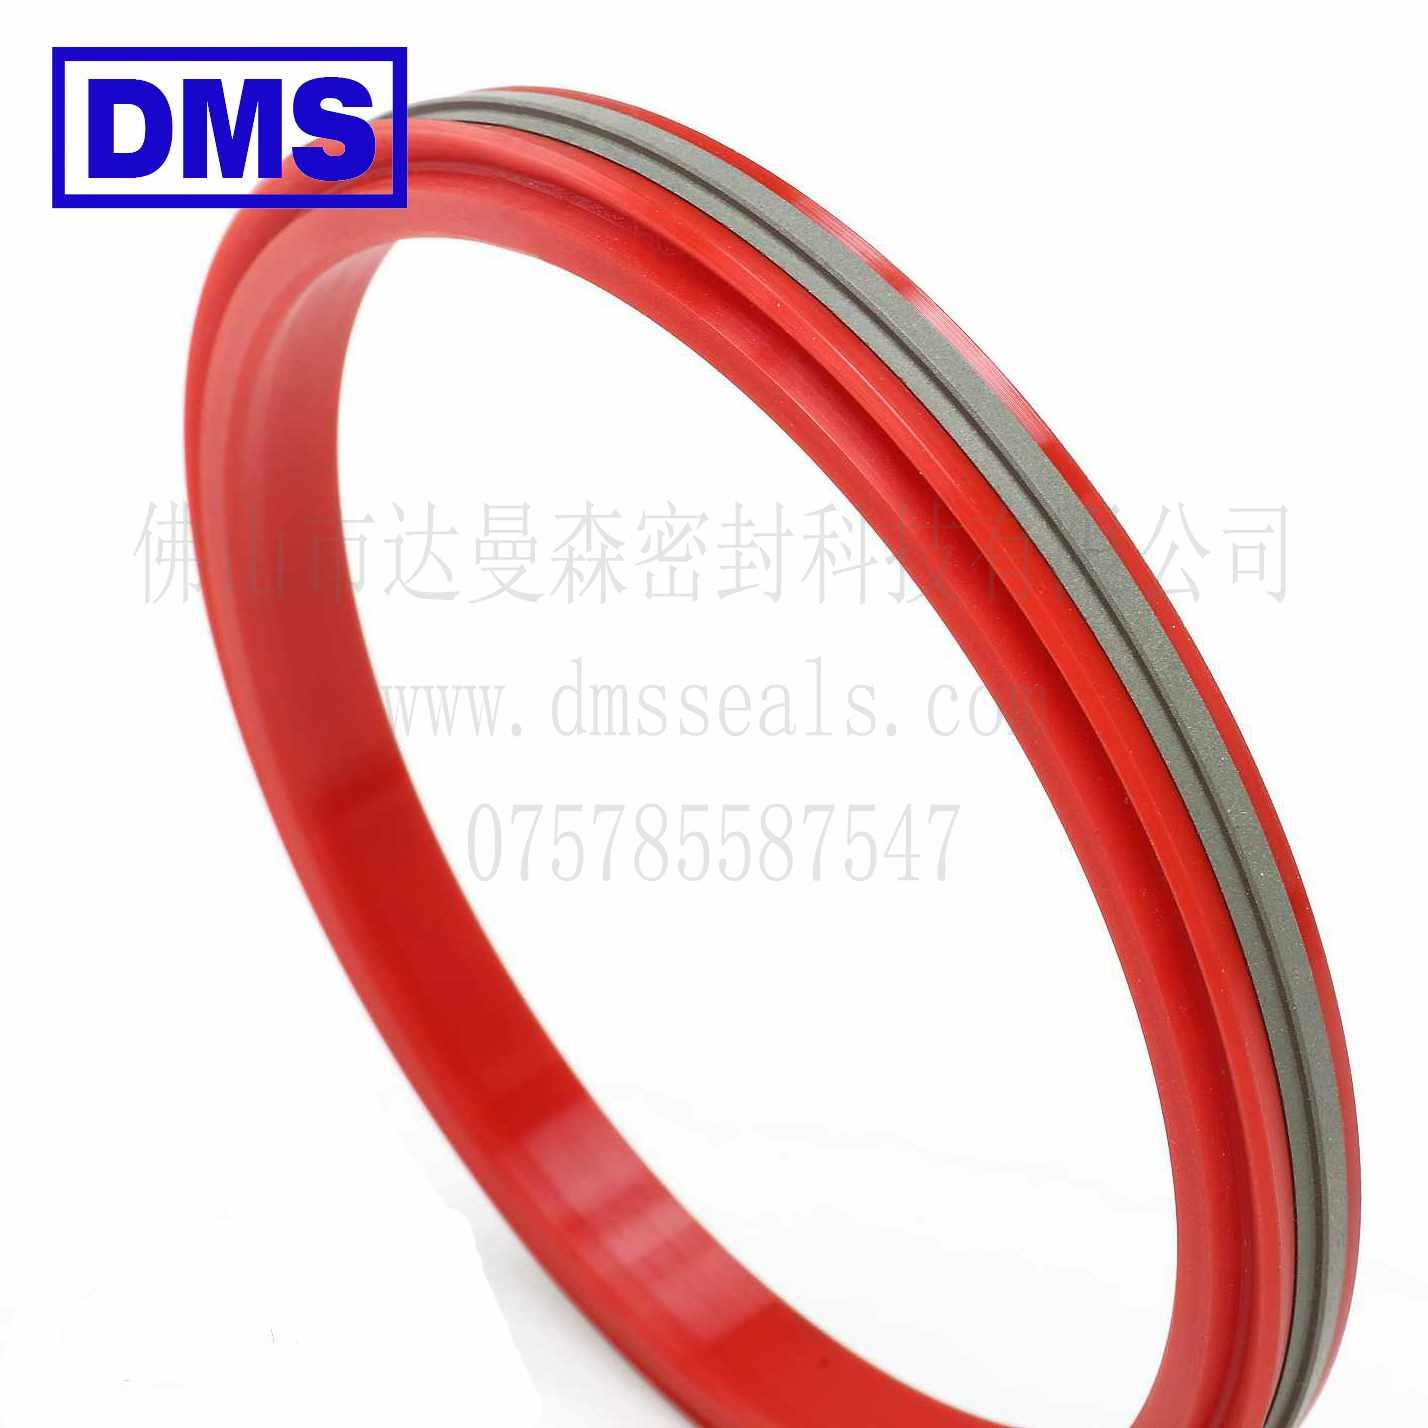 DDA - PTFE Hydraulic Piston Seal suppliers with NBR/FKM O-Ring